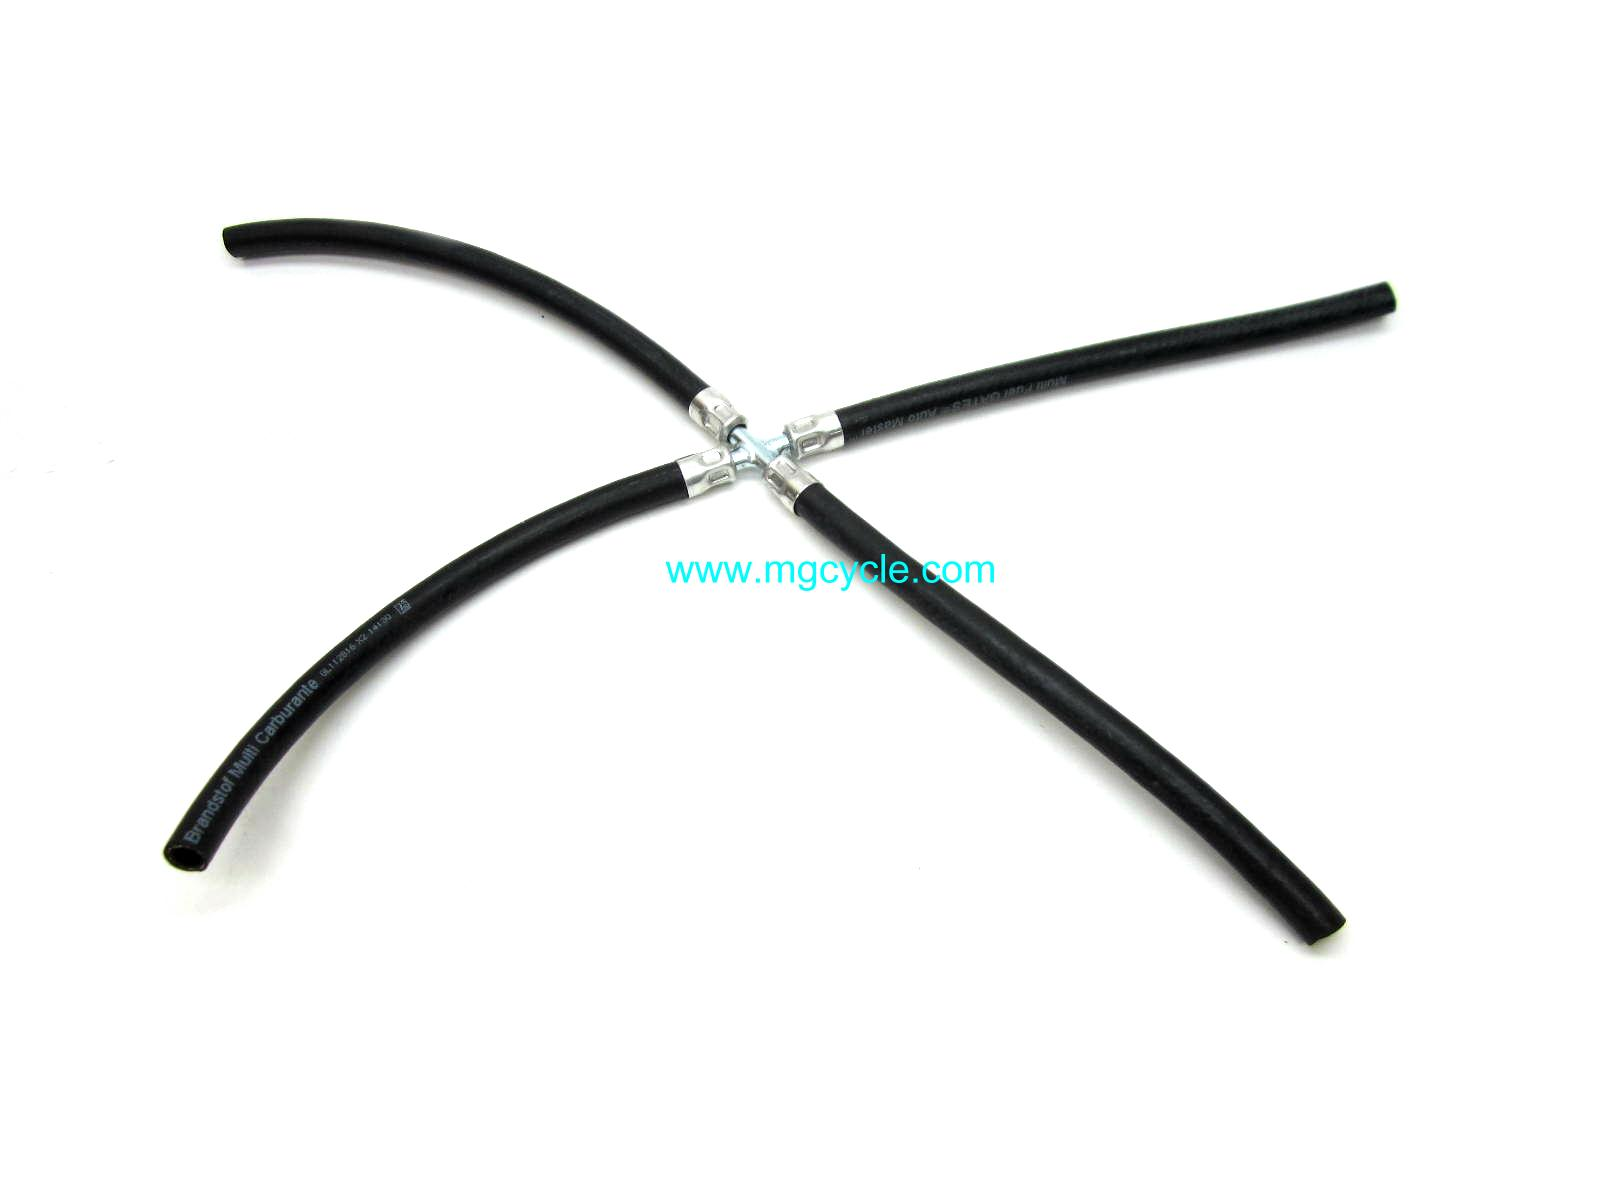 Fuel hose crossover, best quality rubber hose GU29106500